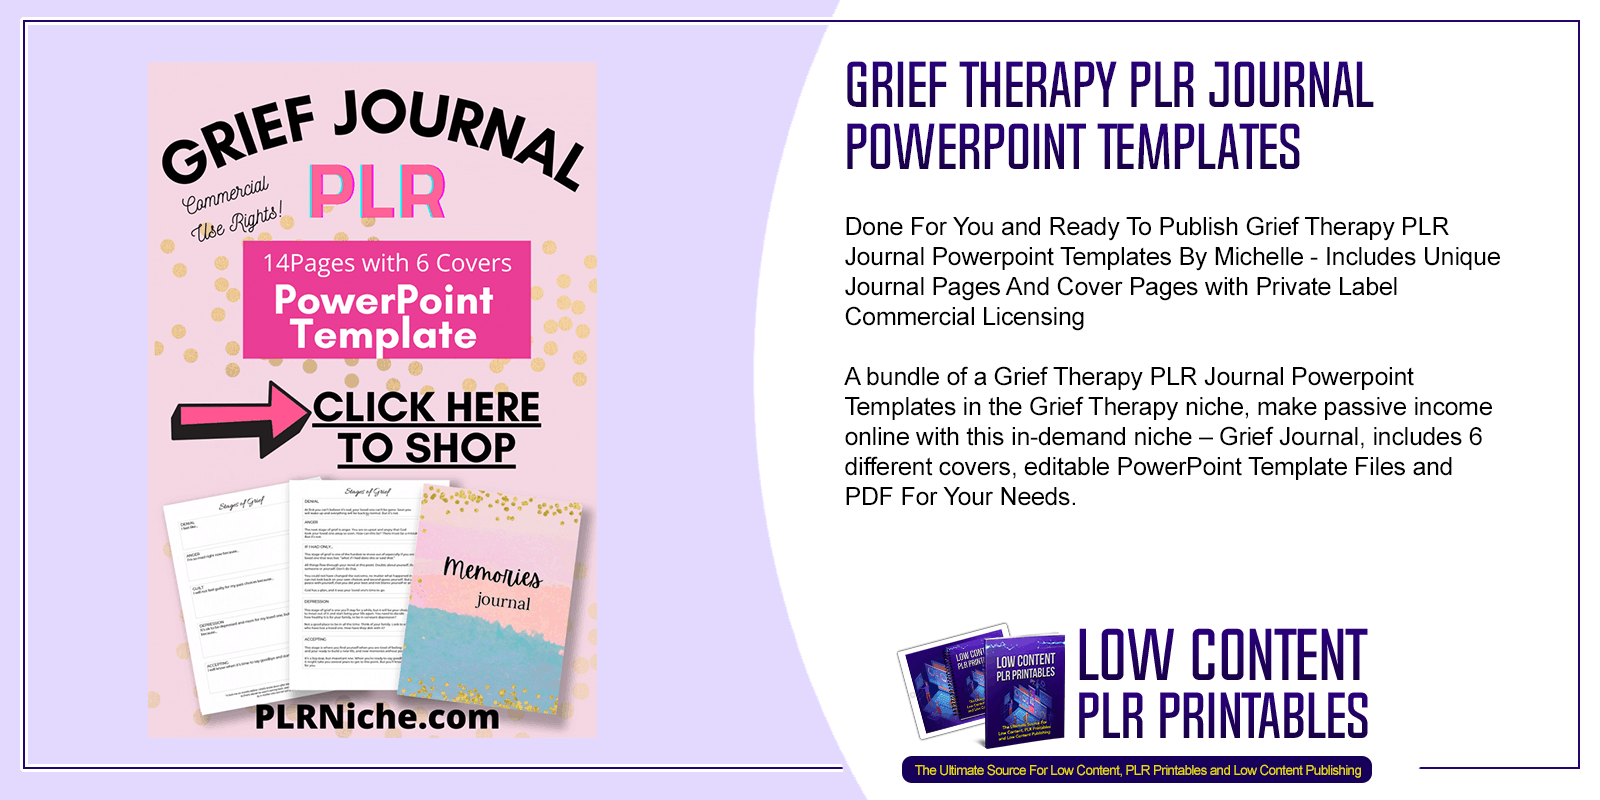 Grief Therapy PLR Journal Powerpoint Templates